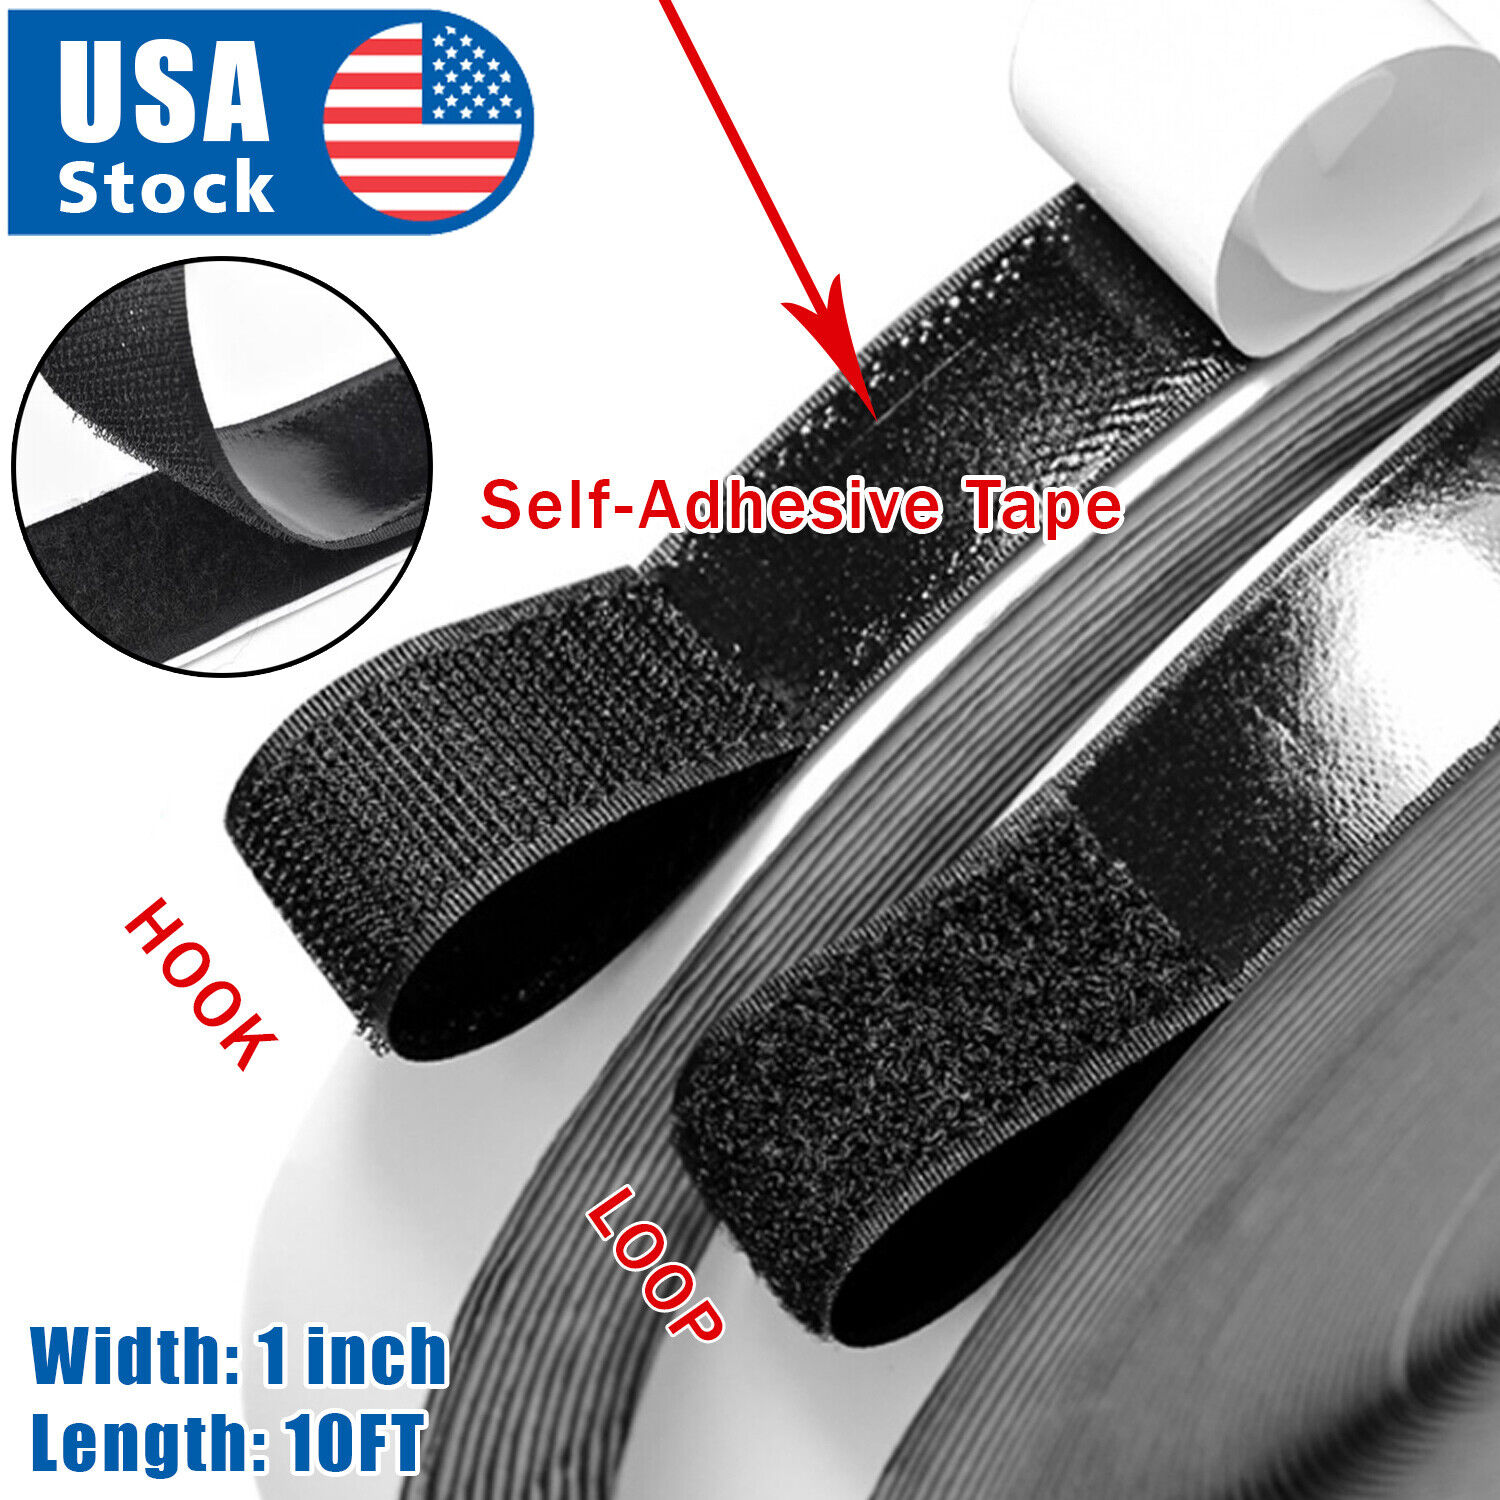 1inch 10 Feet Self Adhesive Tape Hook and Loop Fastener Extra Sticky Back USA Closures & Connectors